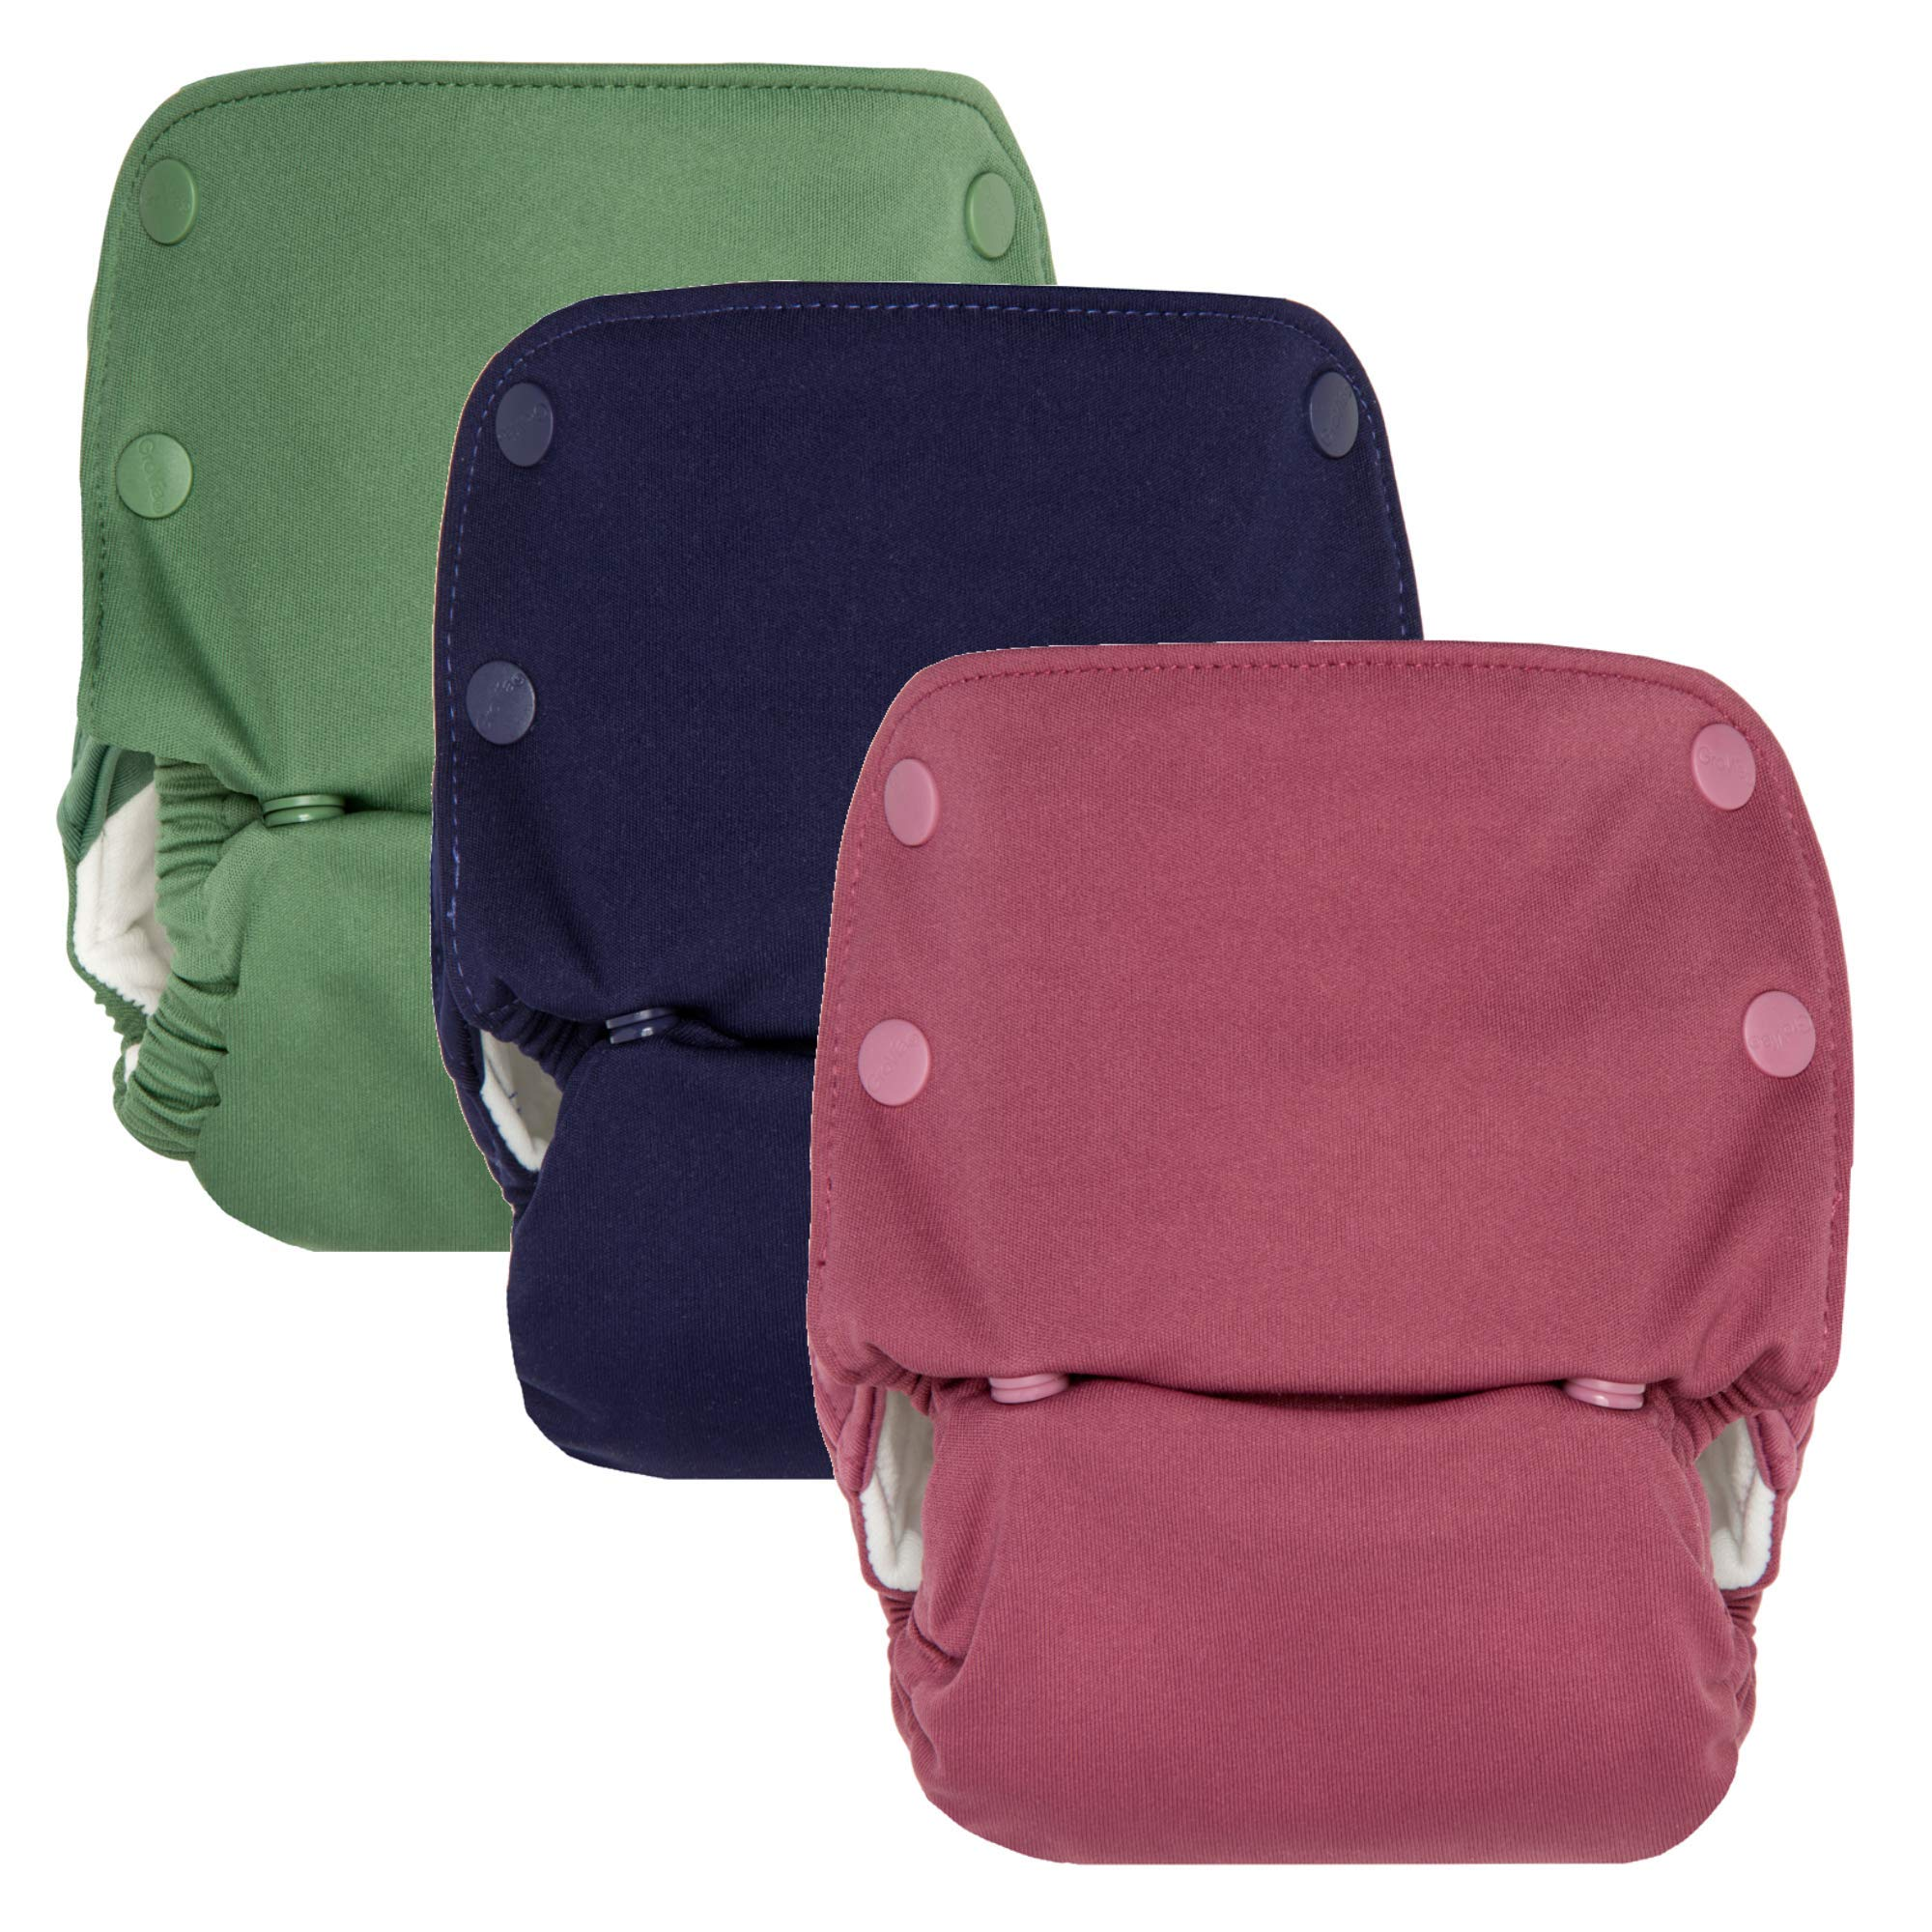 GroVia Reusable All in One Snap Baby Cloth Diaper (AIO) - 3 Pack Color Mix 2